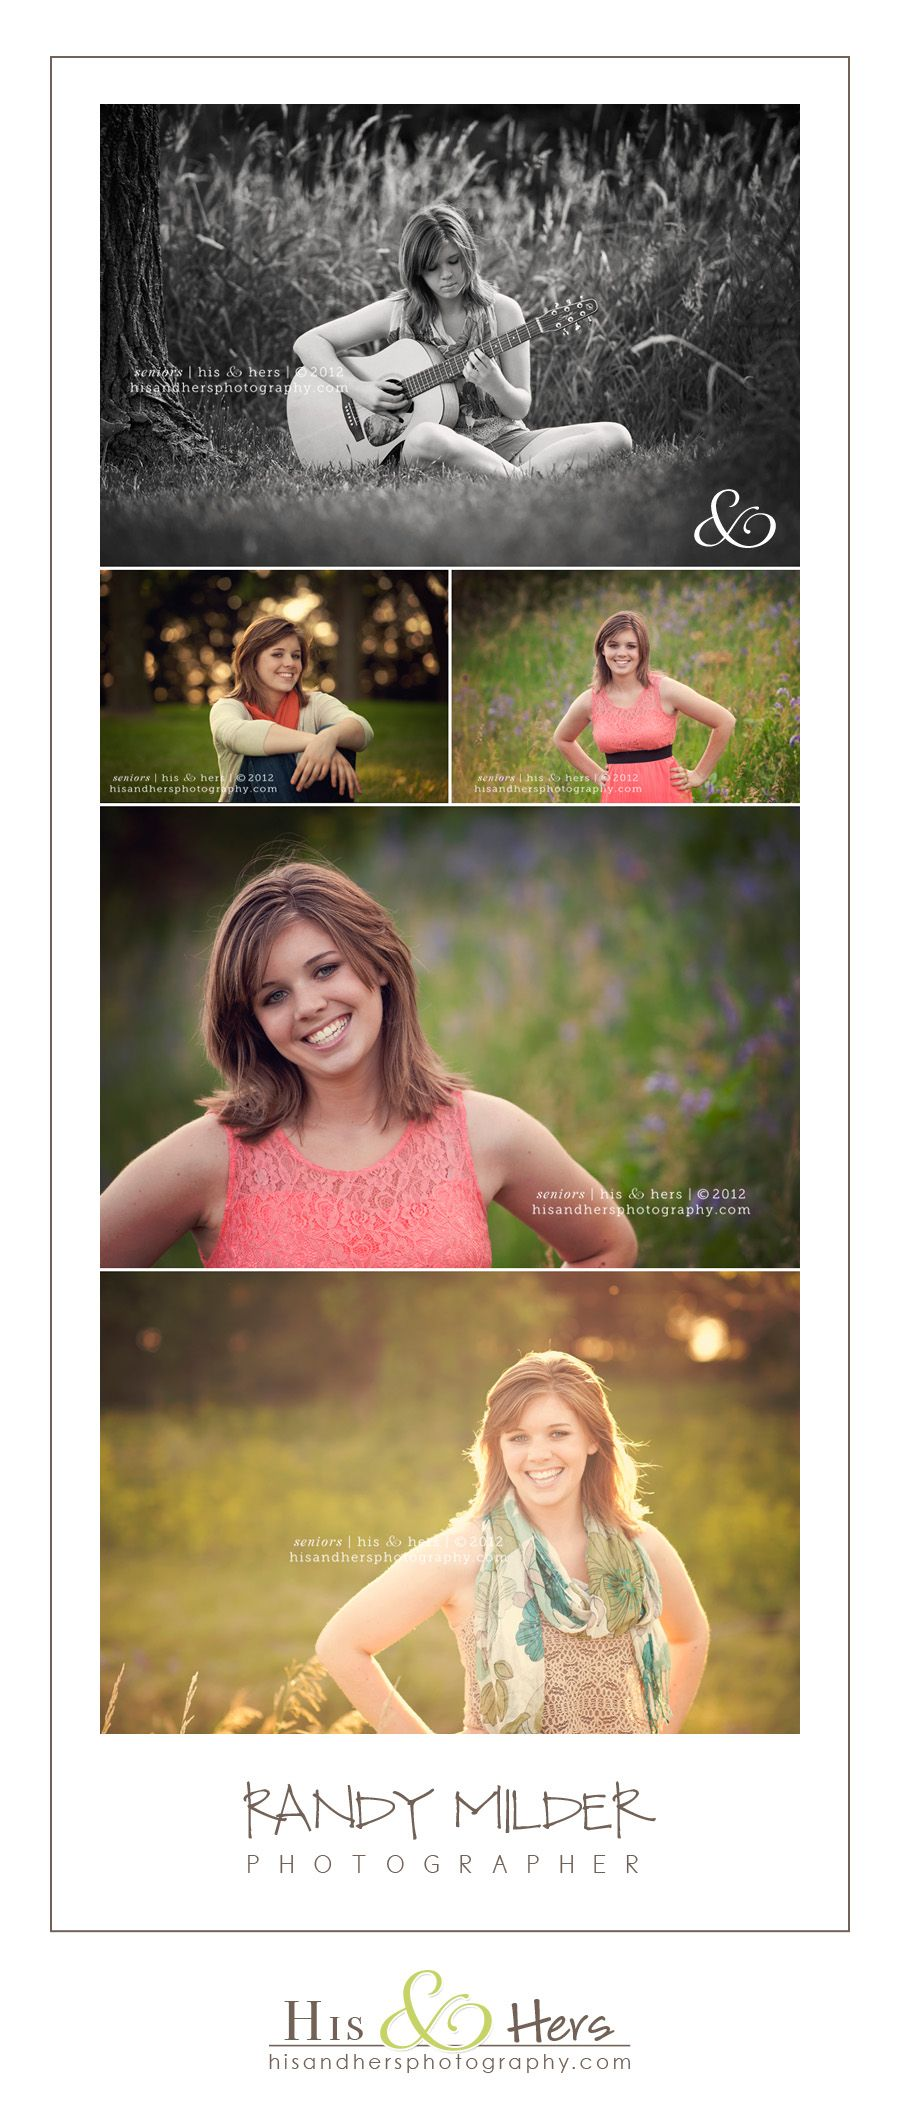 des moines iowa high school class of 2013 senior pictures senior portraits, photographer Randy Milder | His & Hers